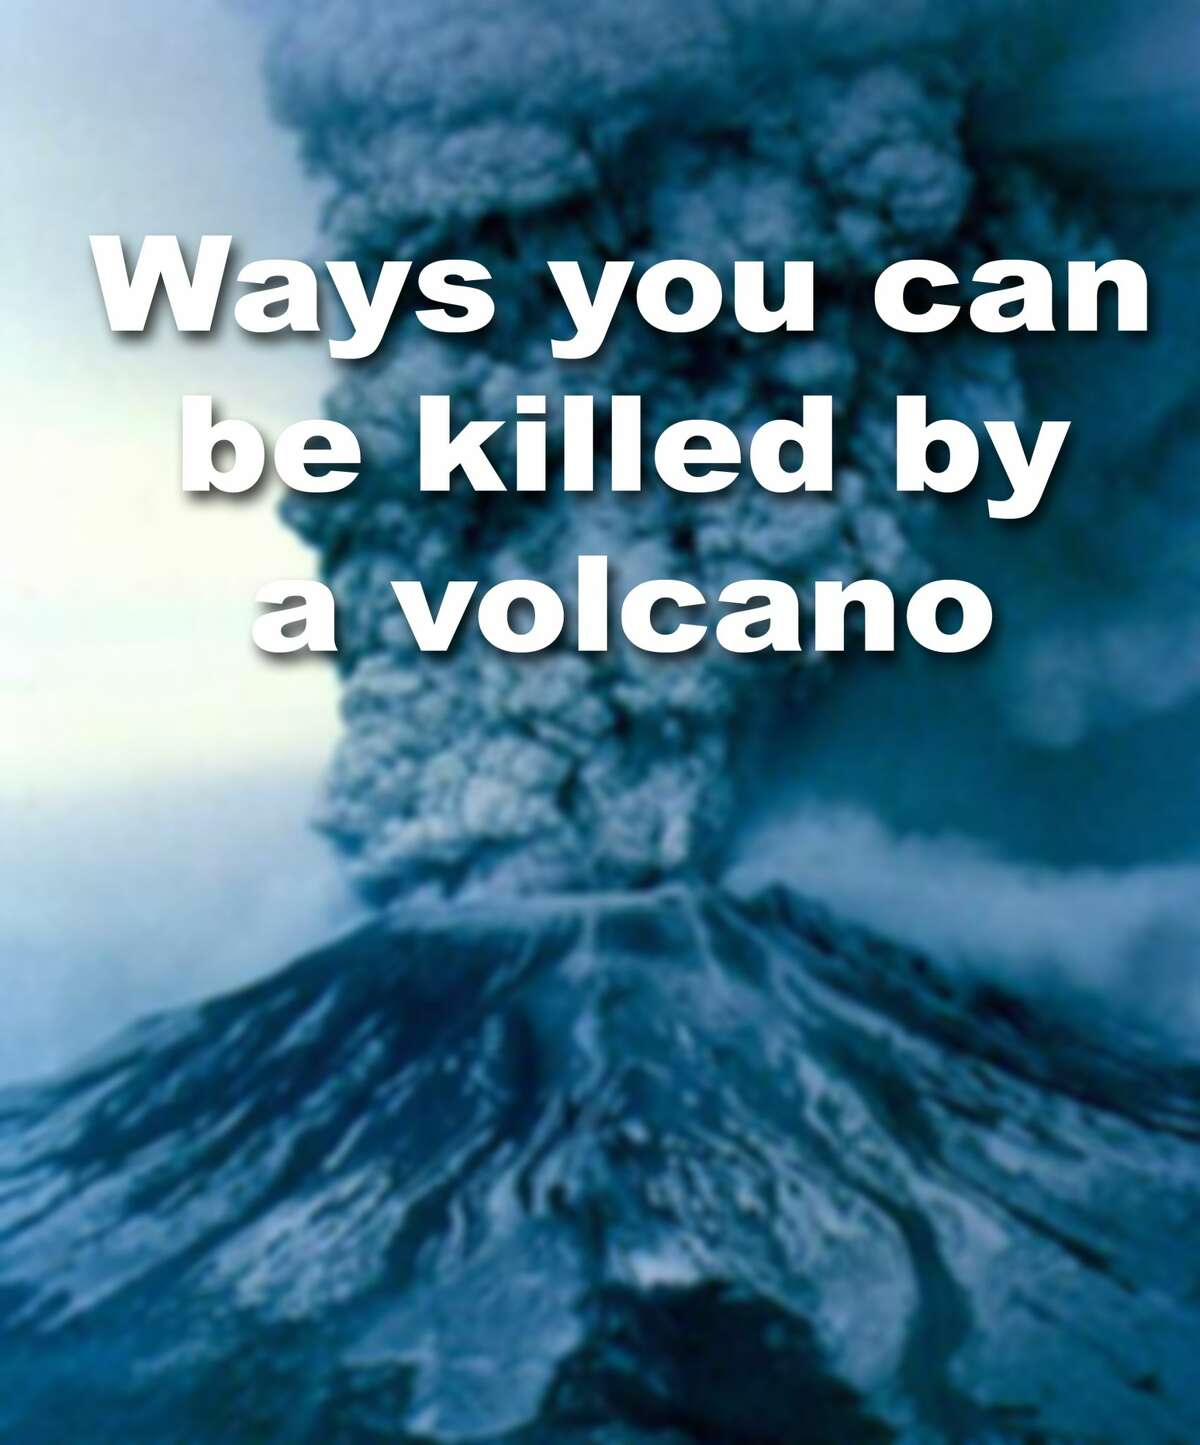 Click through to learn the many ways you can be killed by a volcano.